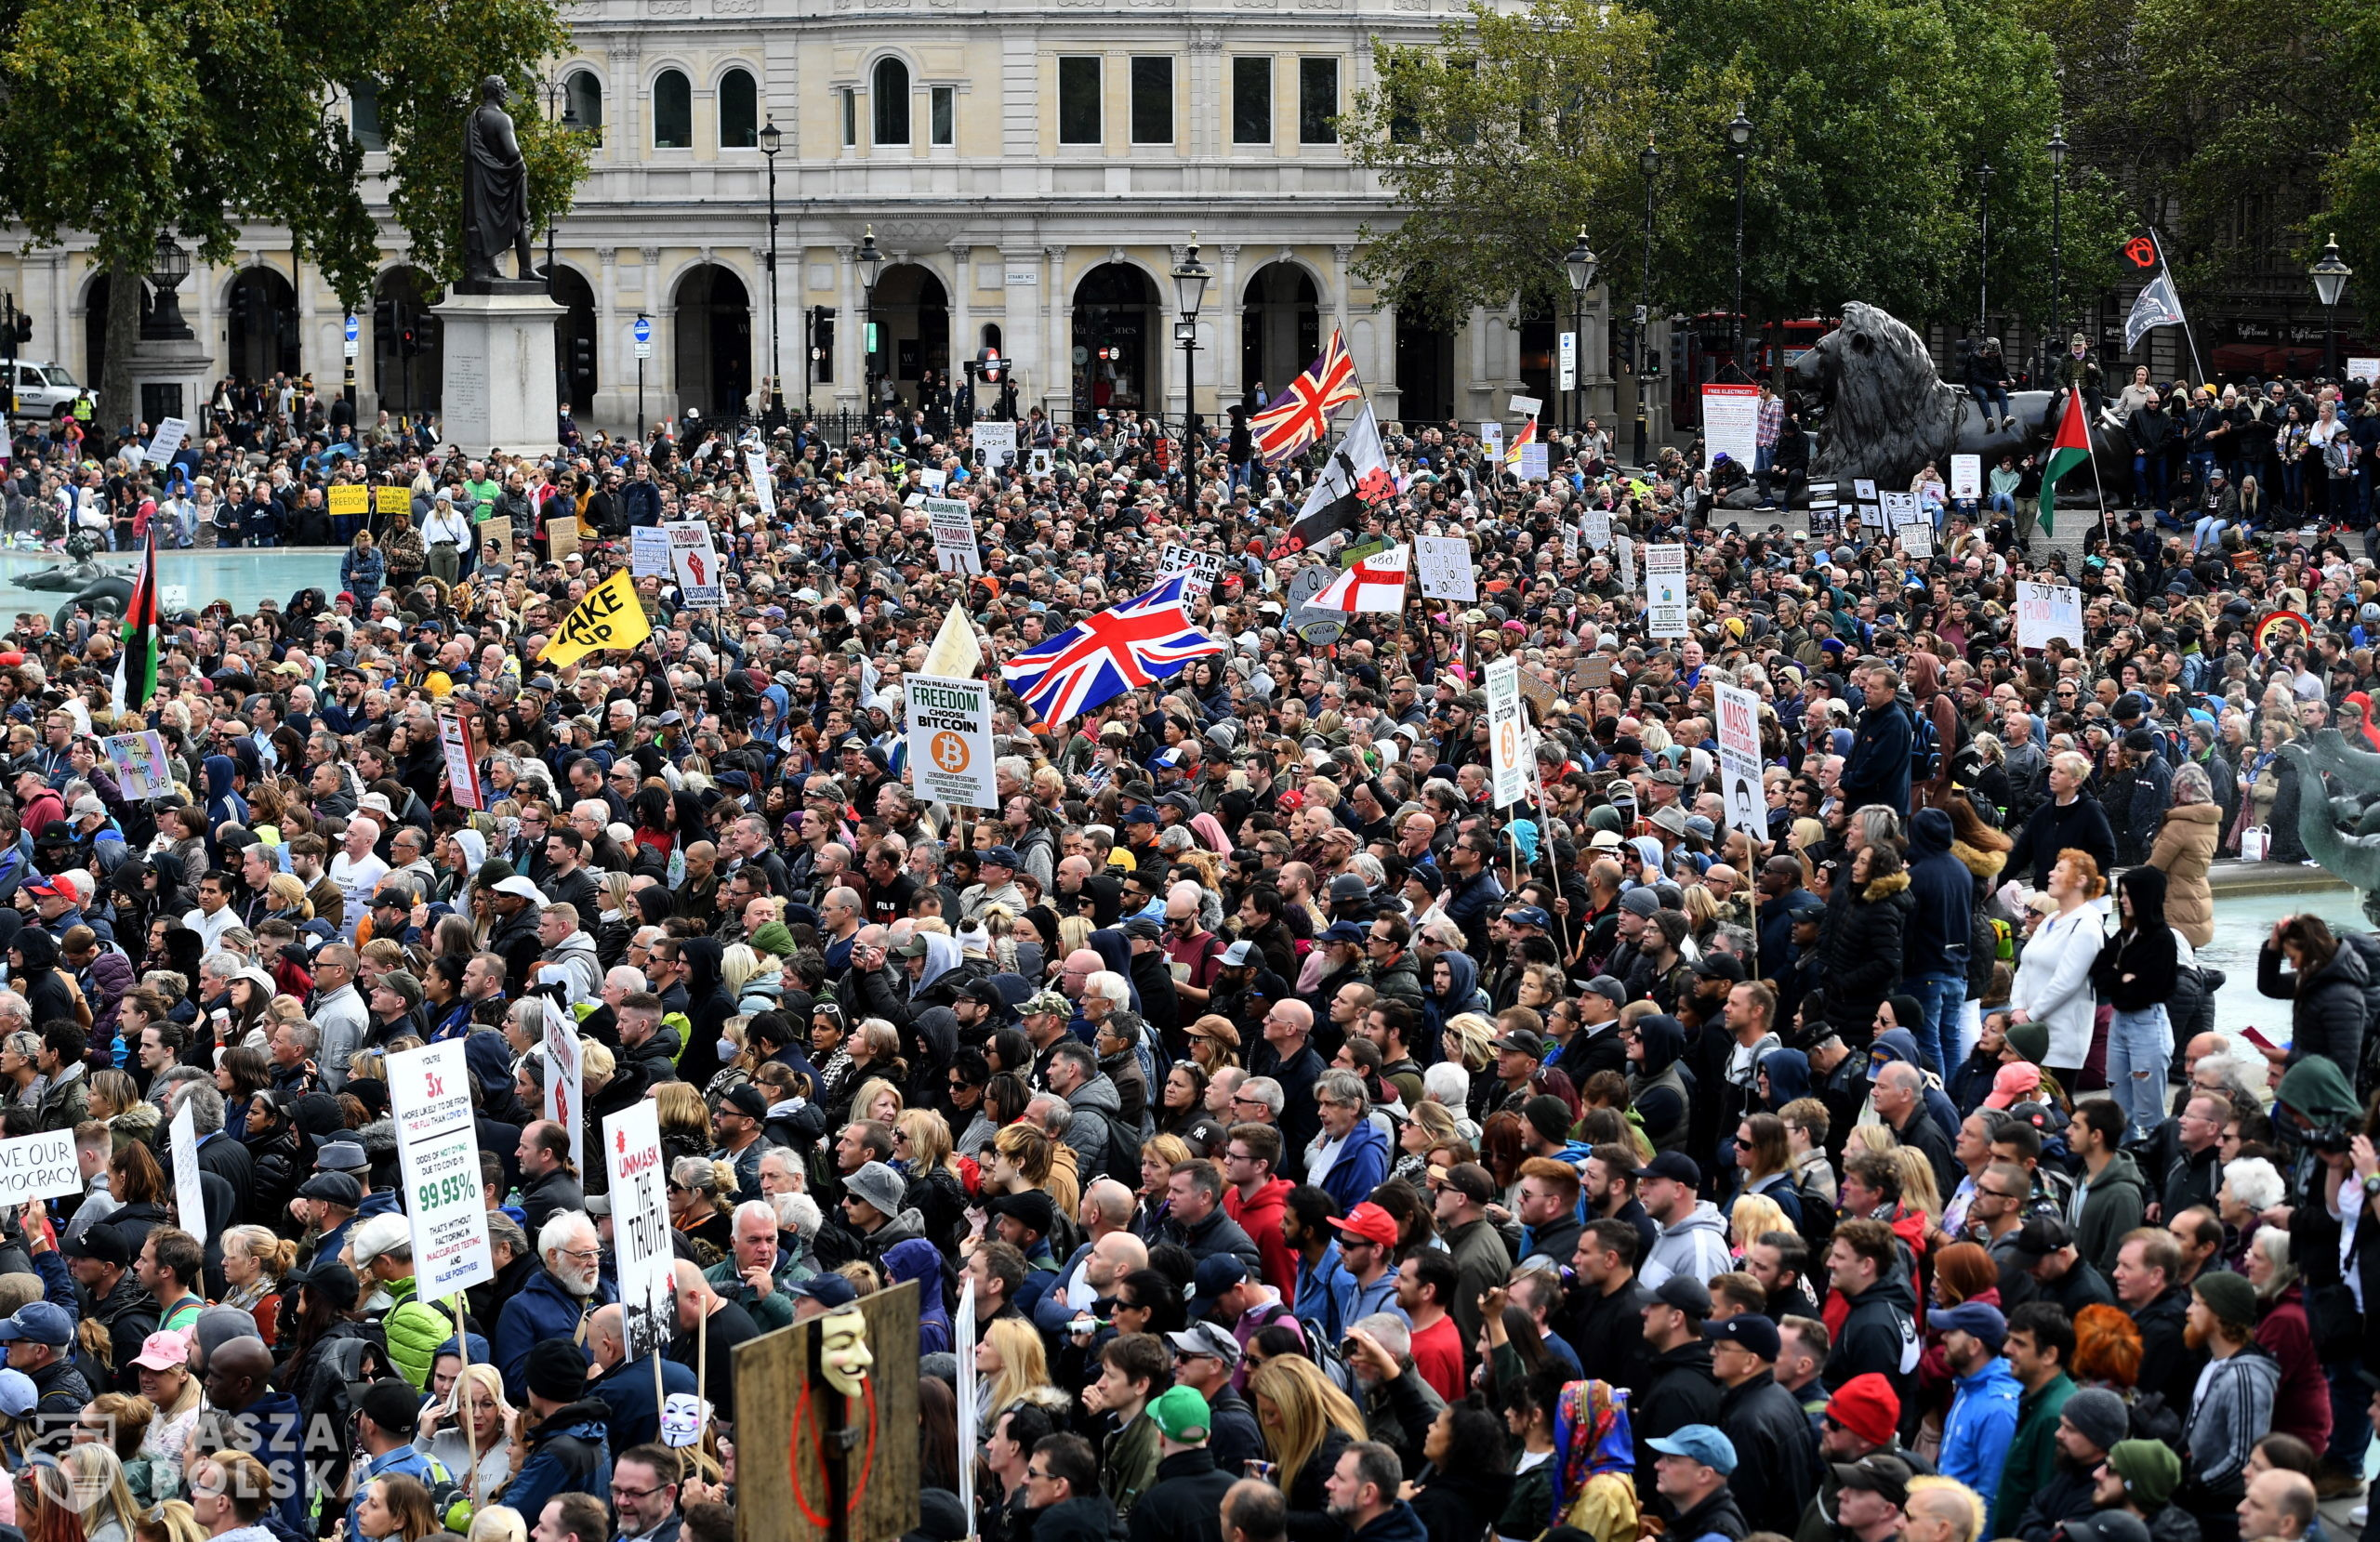 epa08698758 People attend a 'We Do Not Consent' rally at Trafalgar Square in London, Britain, 26 September 2020. Thousends of people gathered at a demonstration to protest against new coronavirus restrictions.  EPA/ANDY RAIN  Dostawca: PAP/EPA.